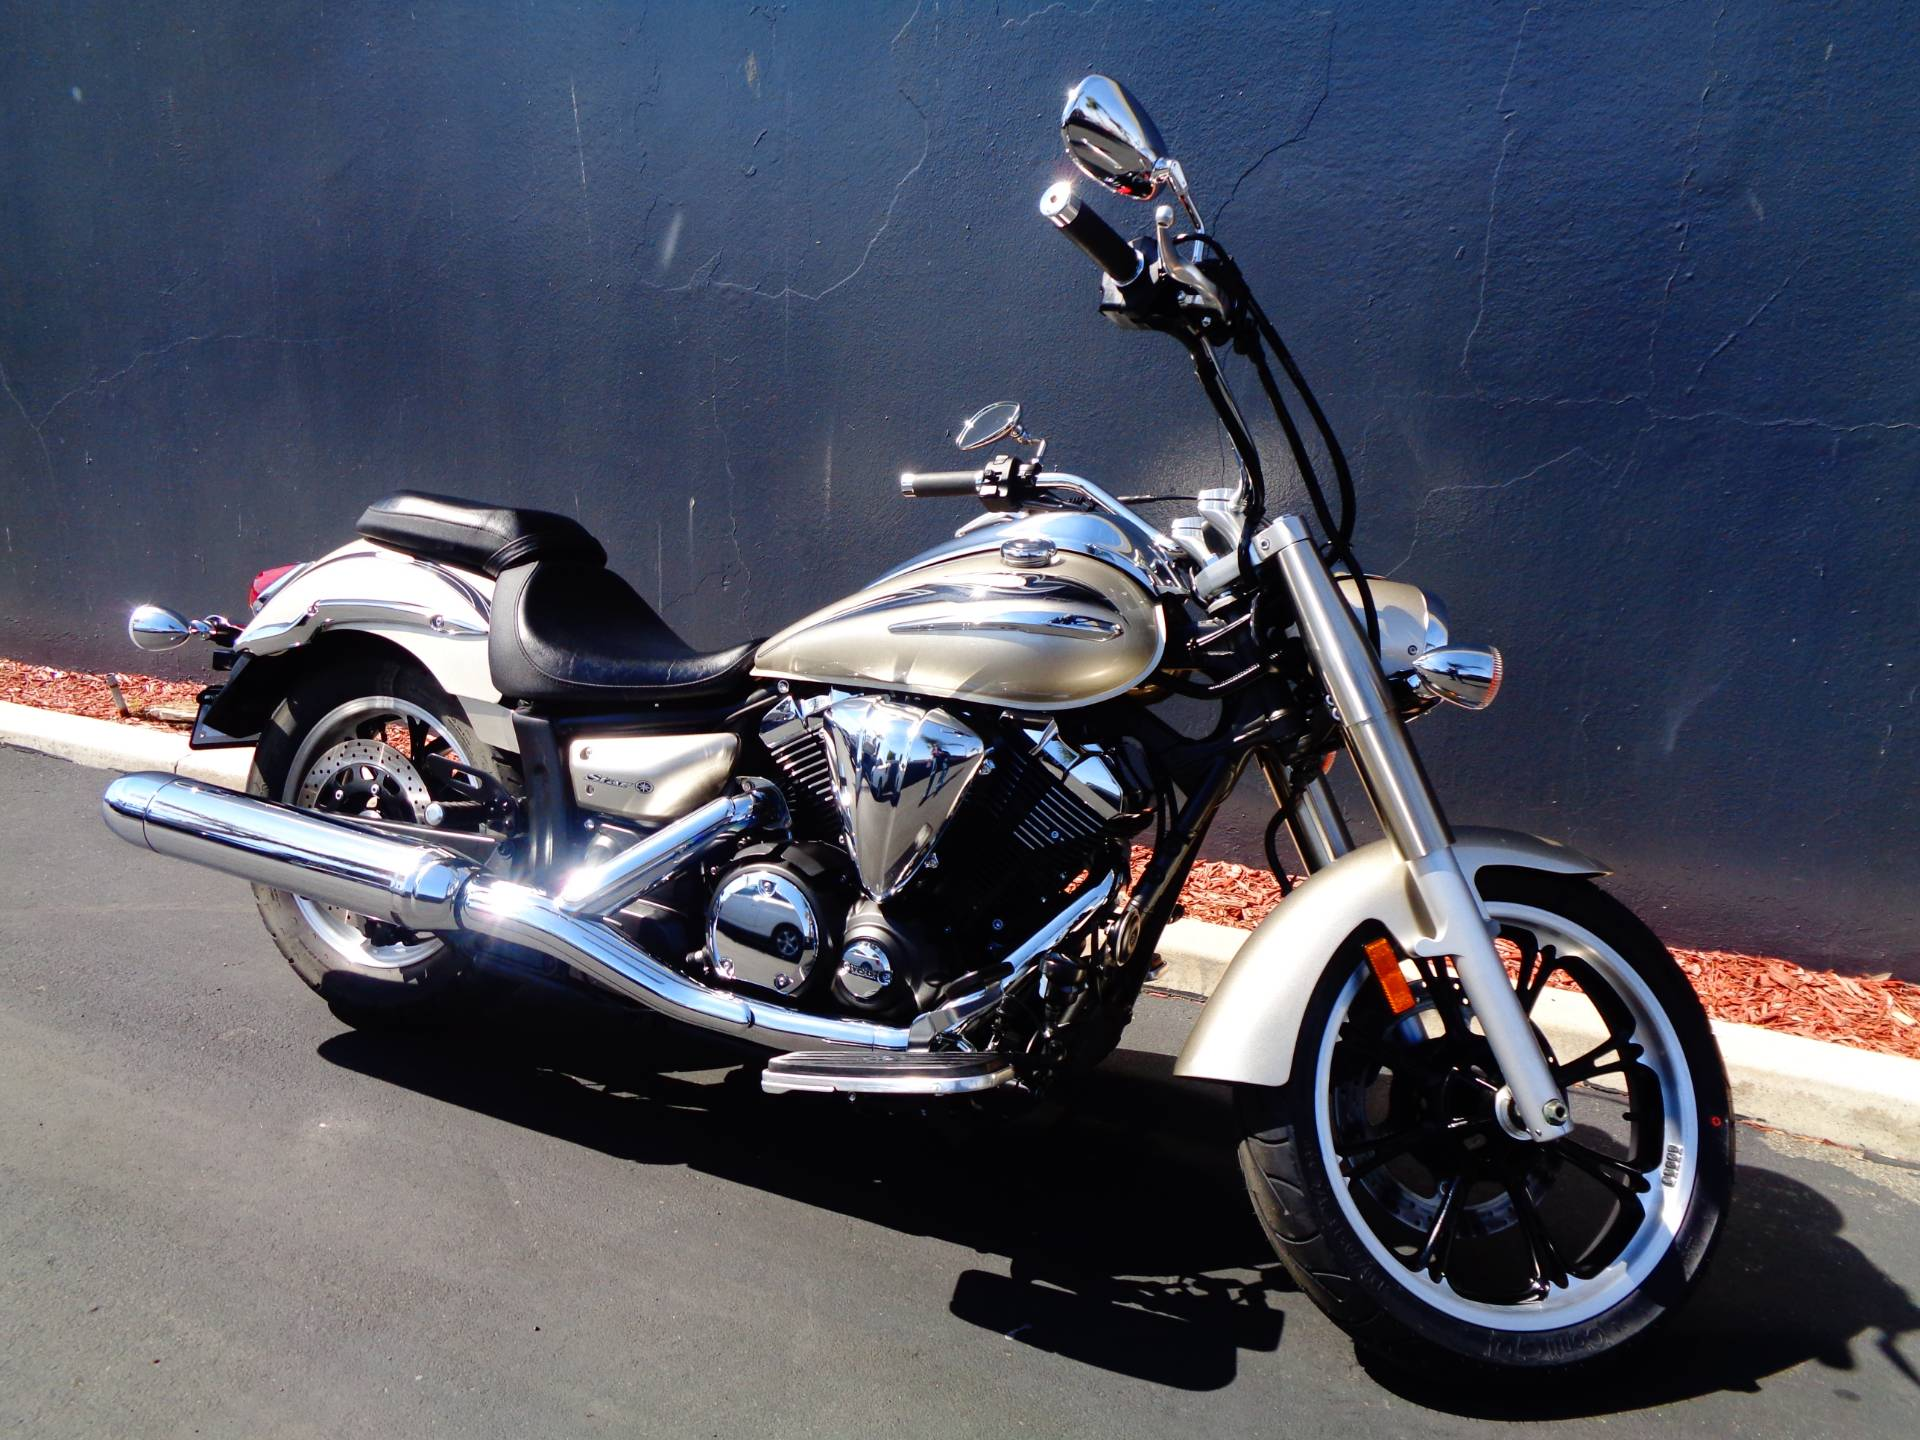 2010 Yamaha V Star 950 Tourer in Chula Vista, California - Photo 2